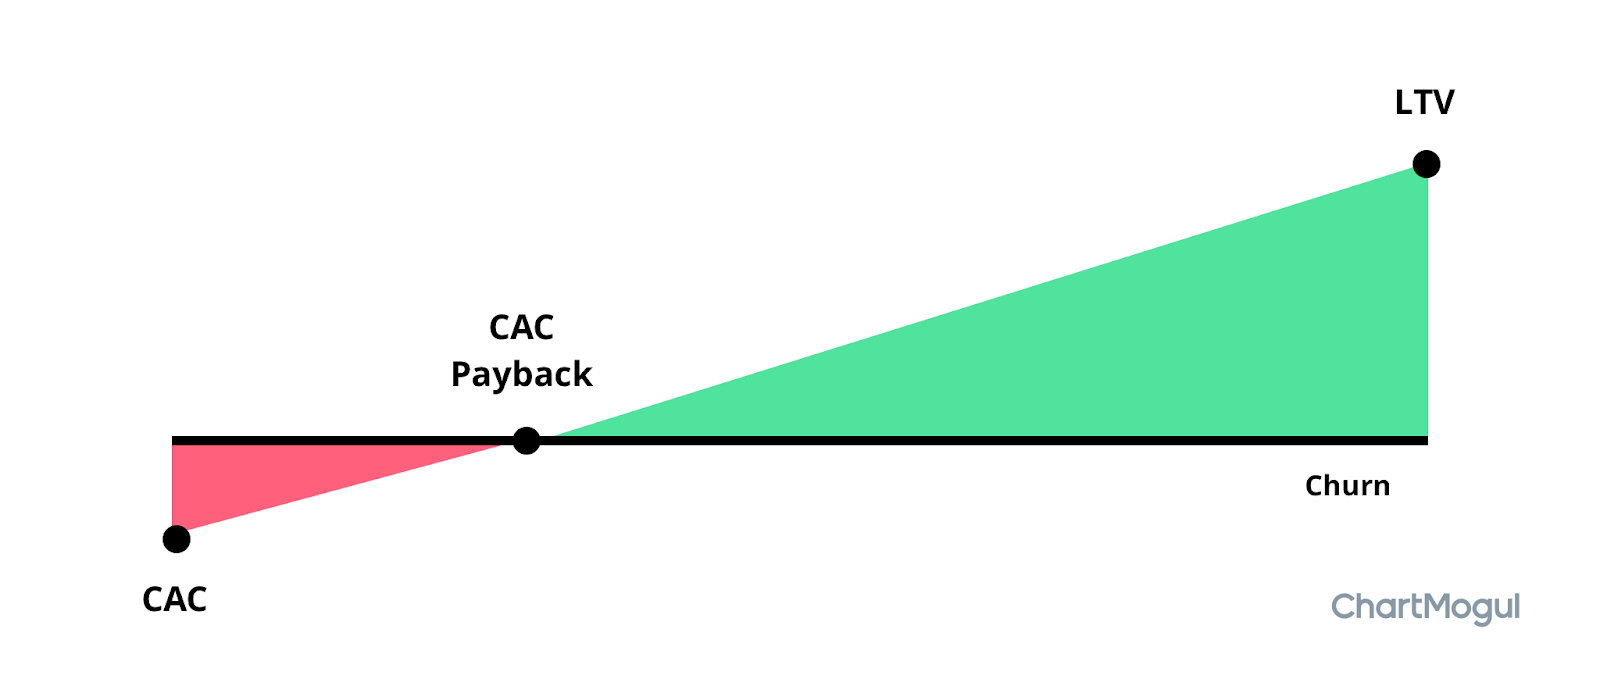 SaaS metrics: Relationship between CAC and LTV